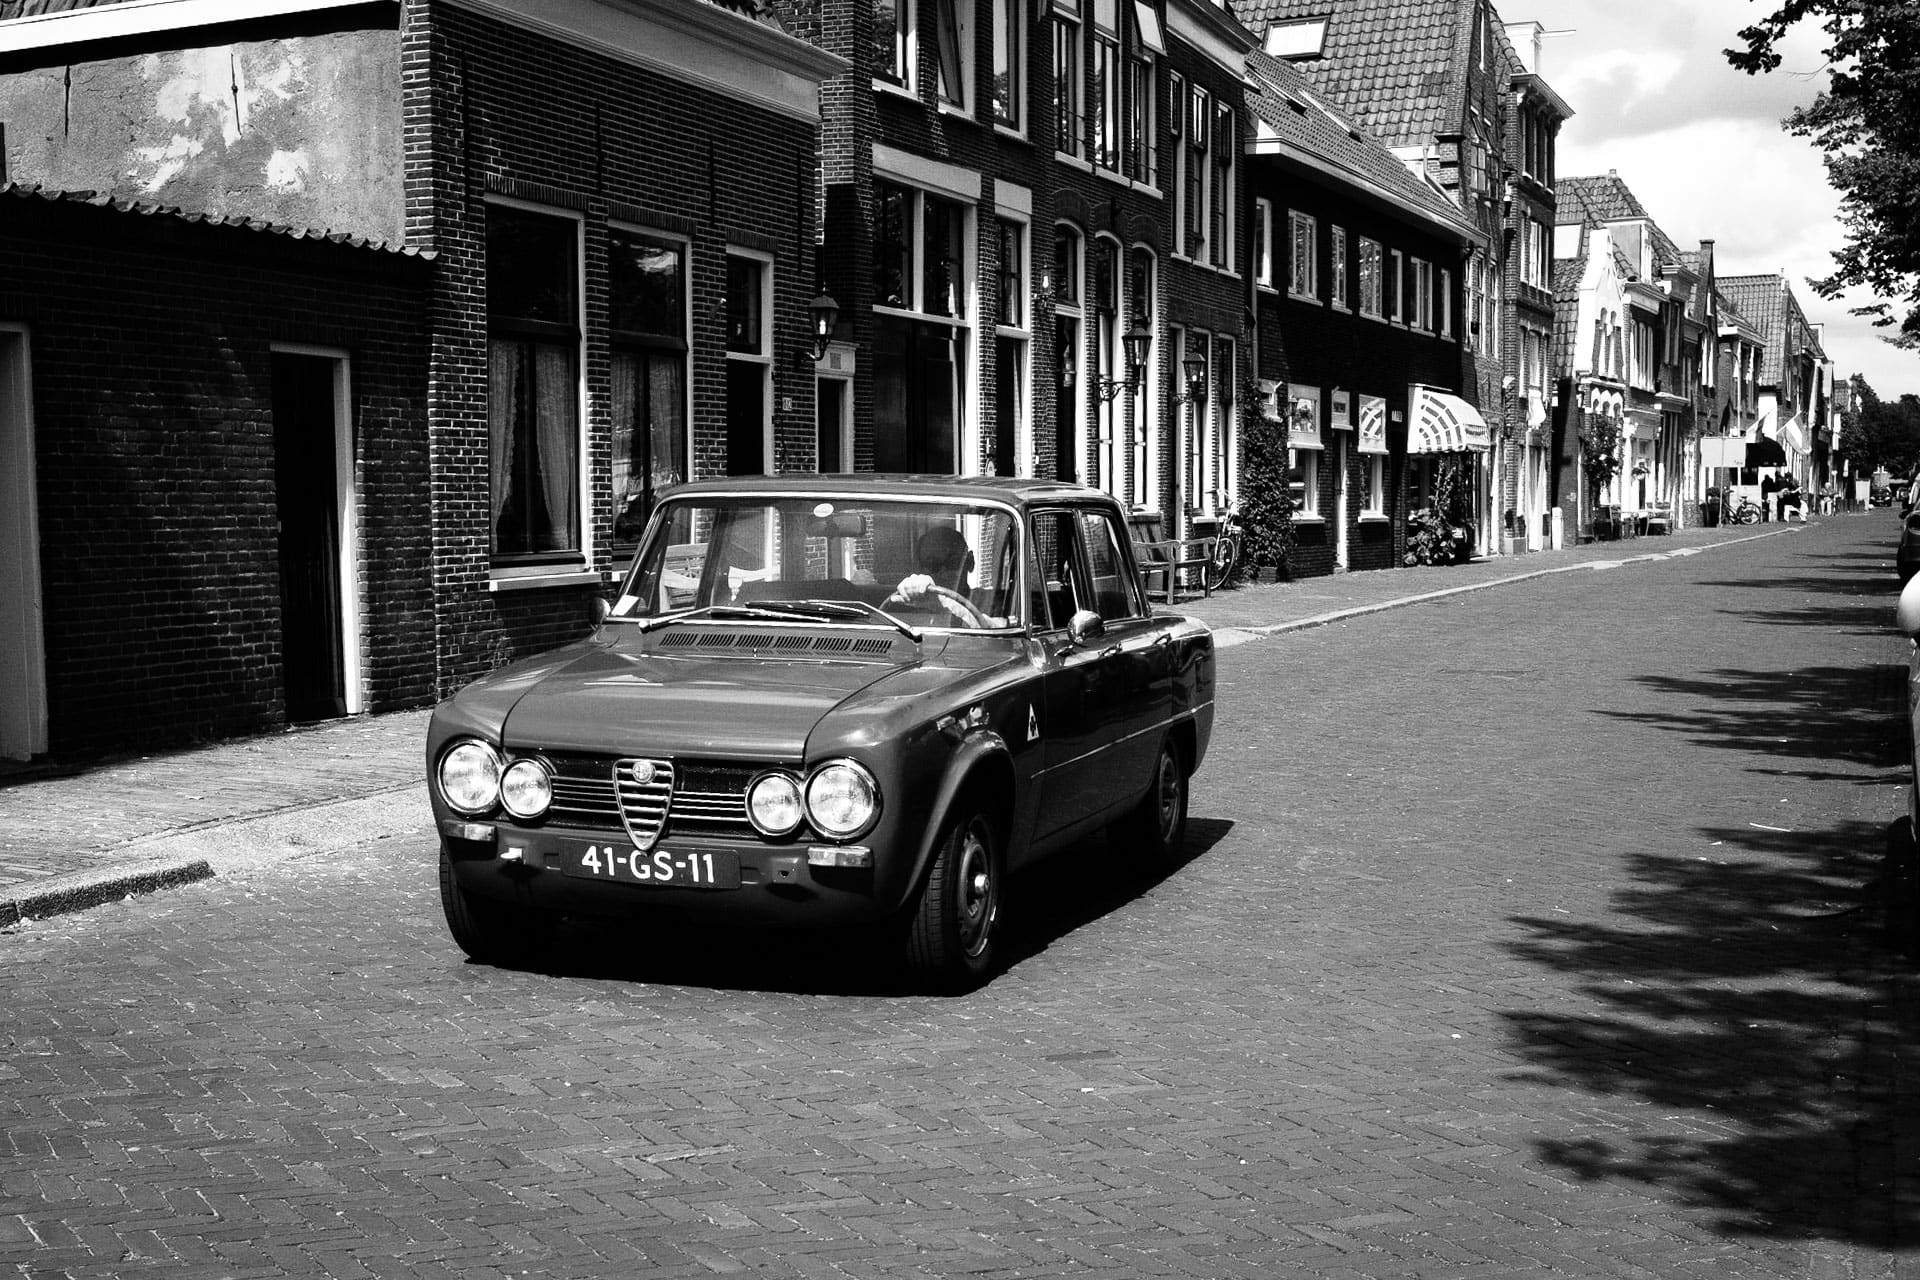 Alfa romeo in Hoorn, The Netherlands